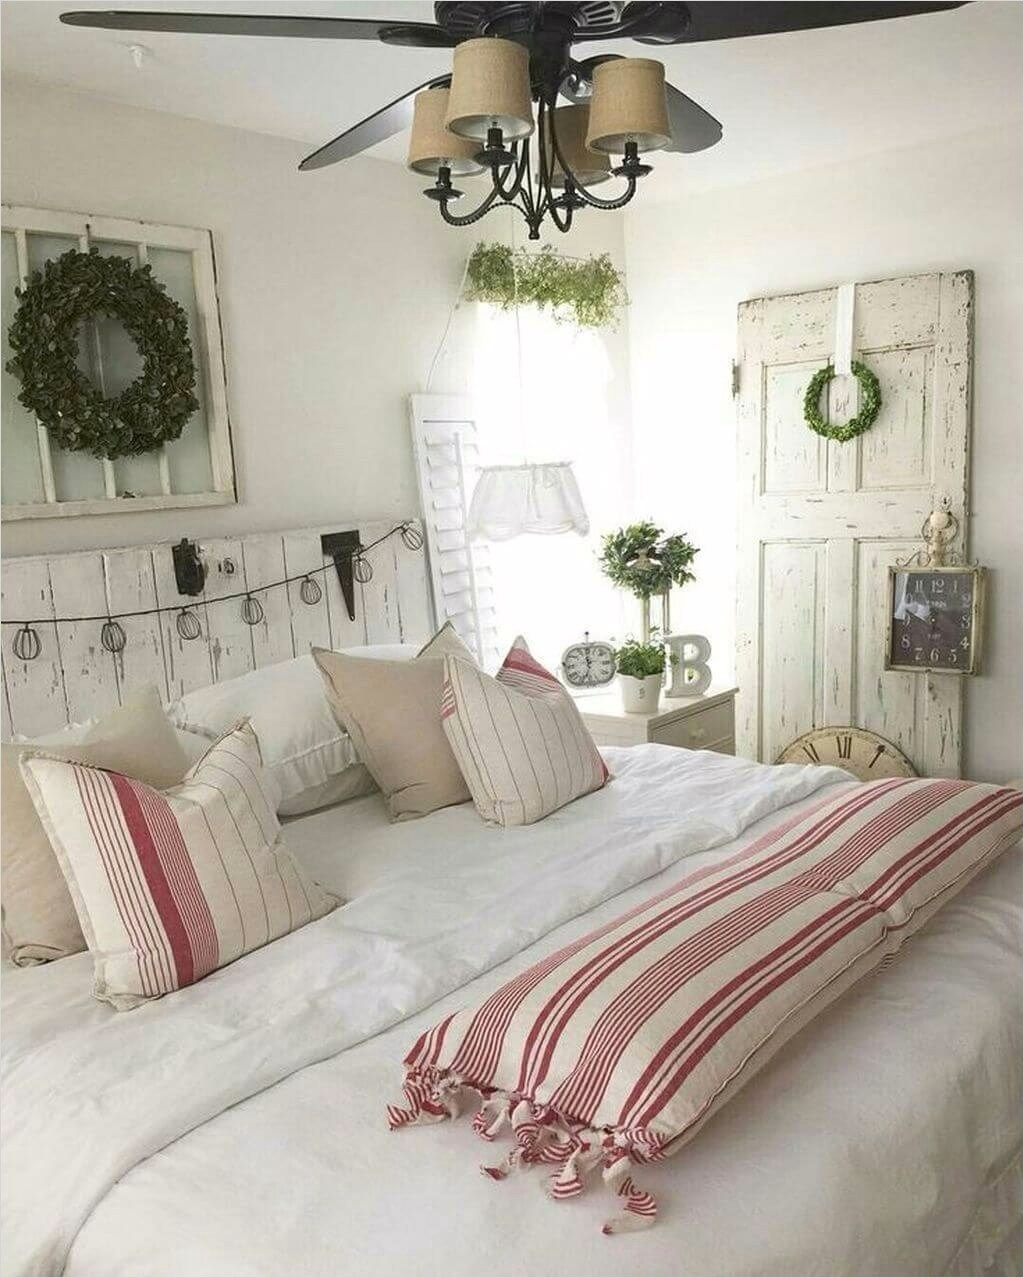 43 Stunning Country Farmhouse Bedroom Ideas 29 30 Best French